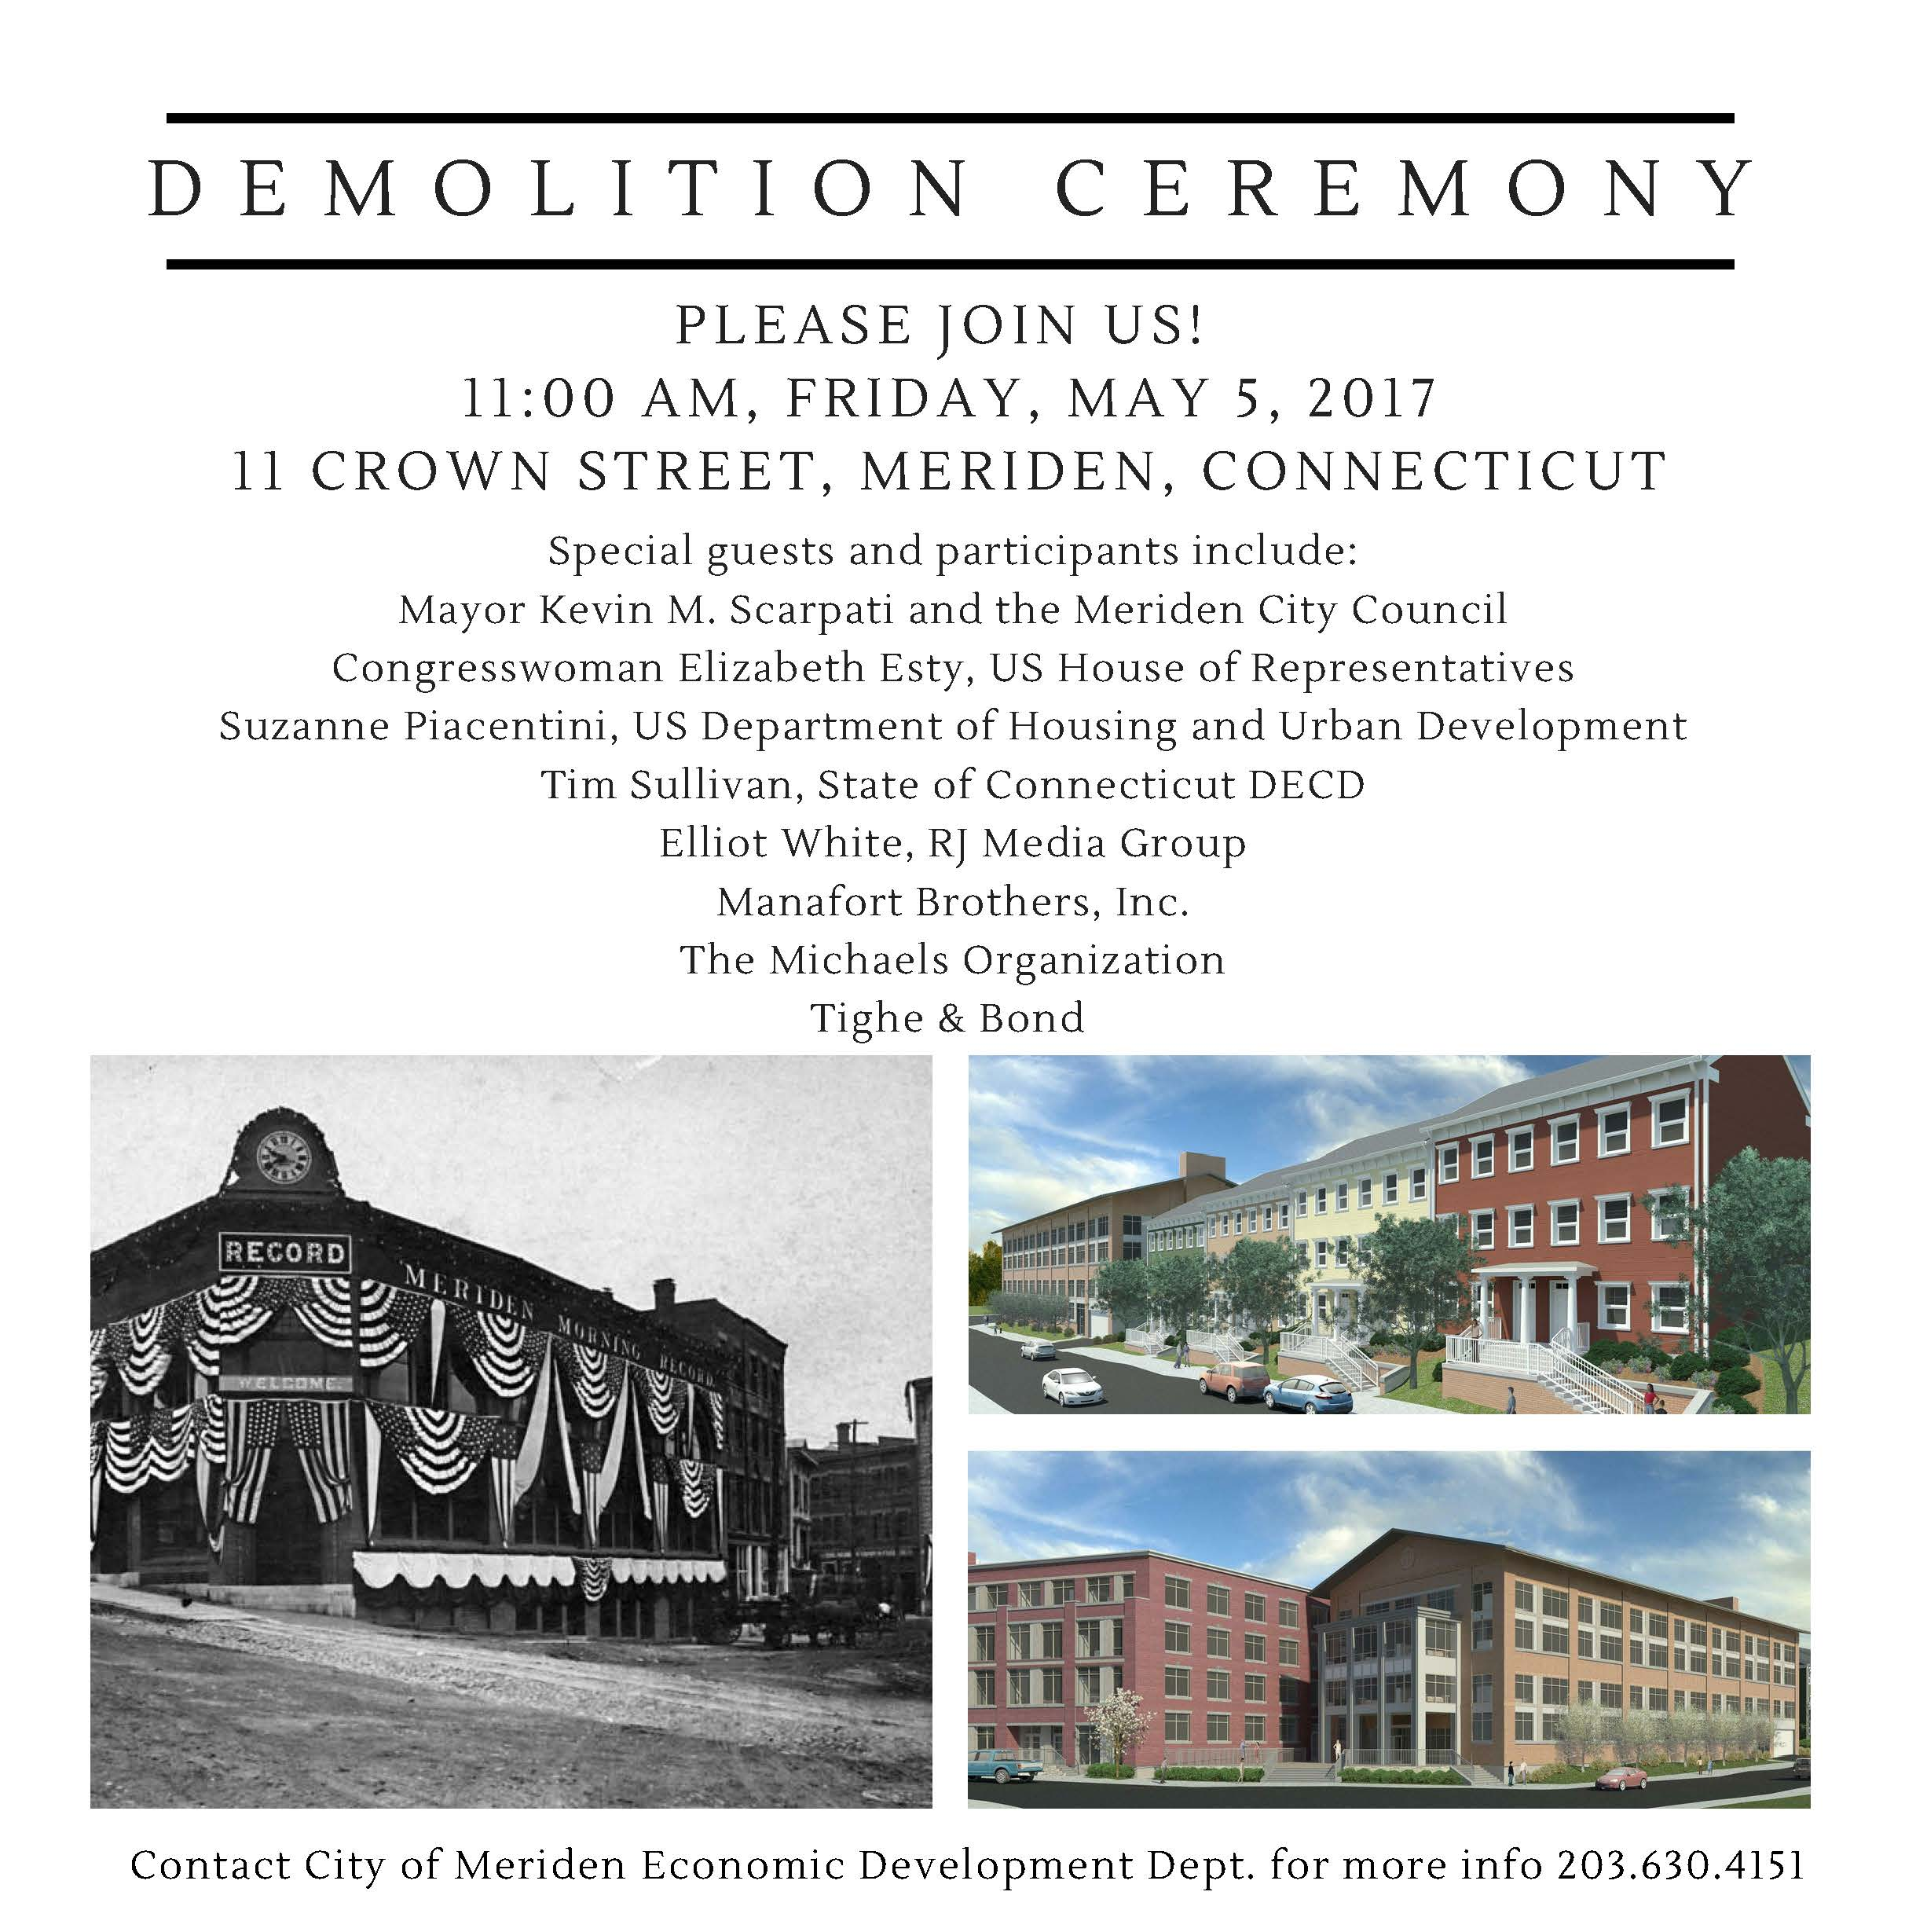 Media inquiries may be directed to the City of Meriden Economic Development  Department at (203) 630 4151. Additional information on the demolition and  ...